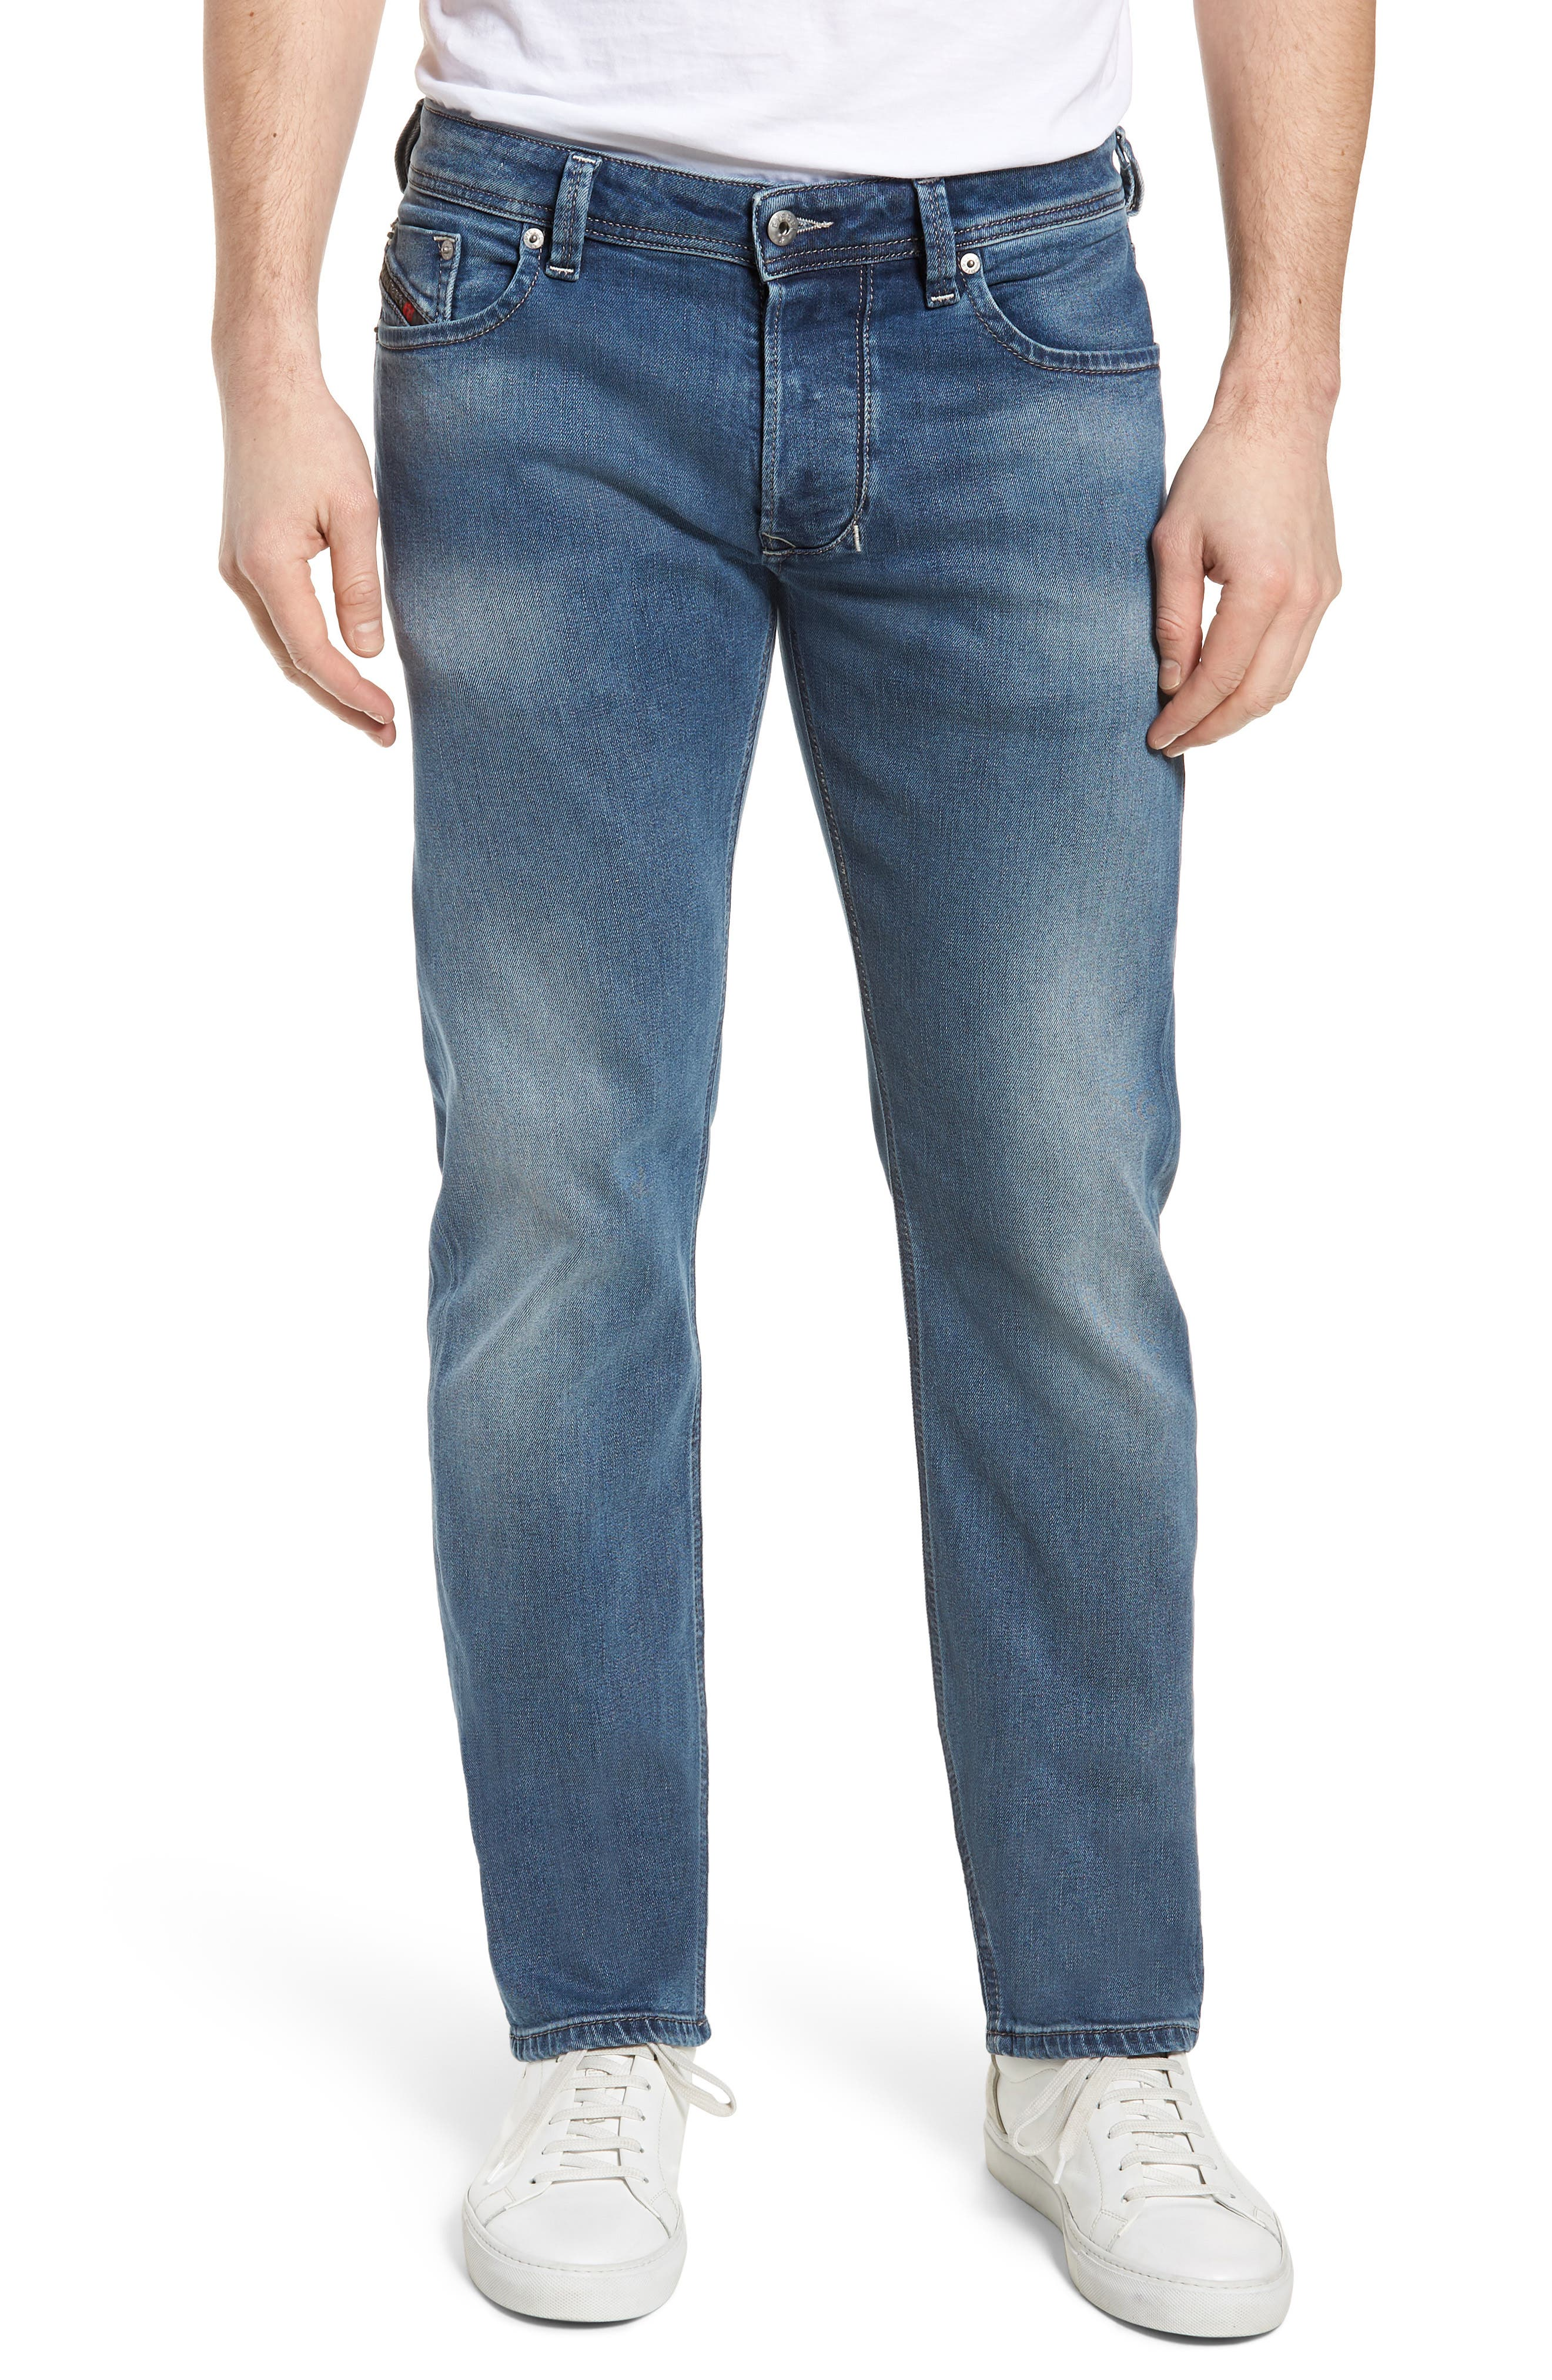 Larkee Relaxed Fit Jeans,                             Main thumbnail 1, color,                             900